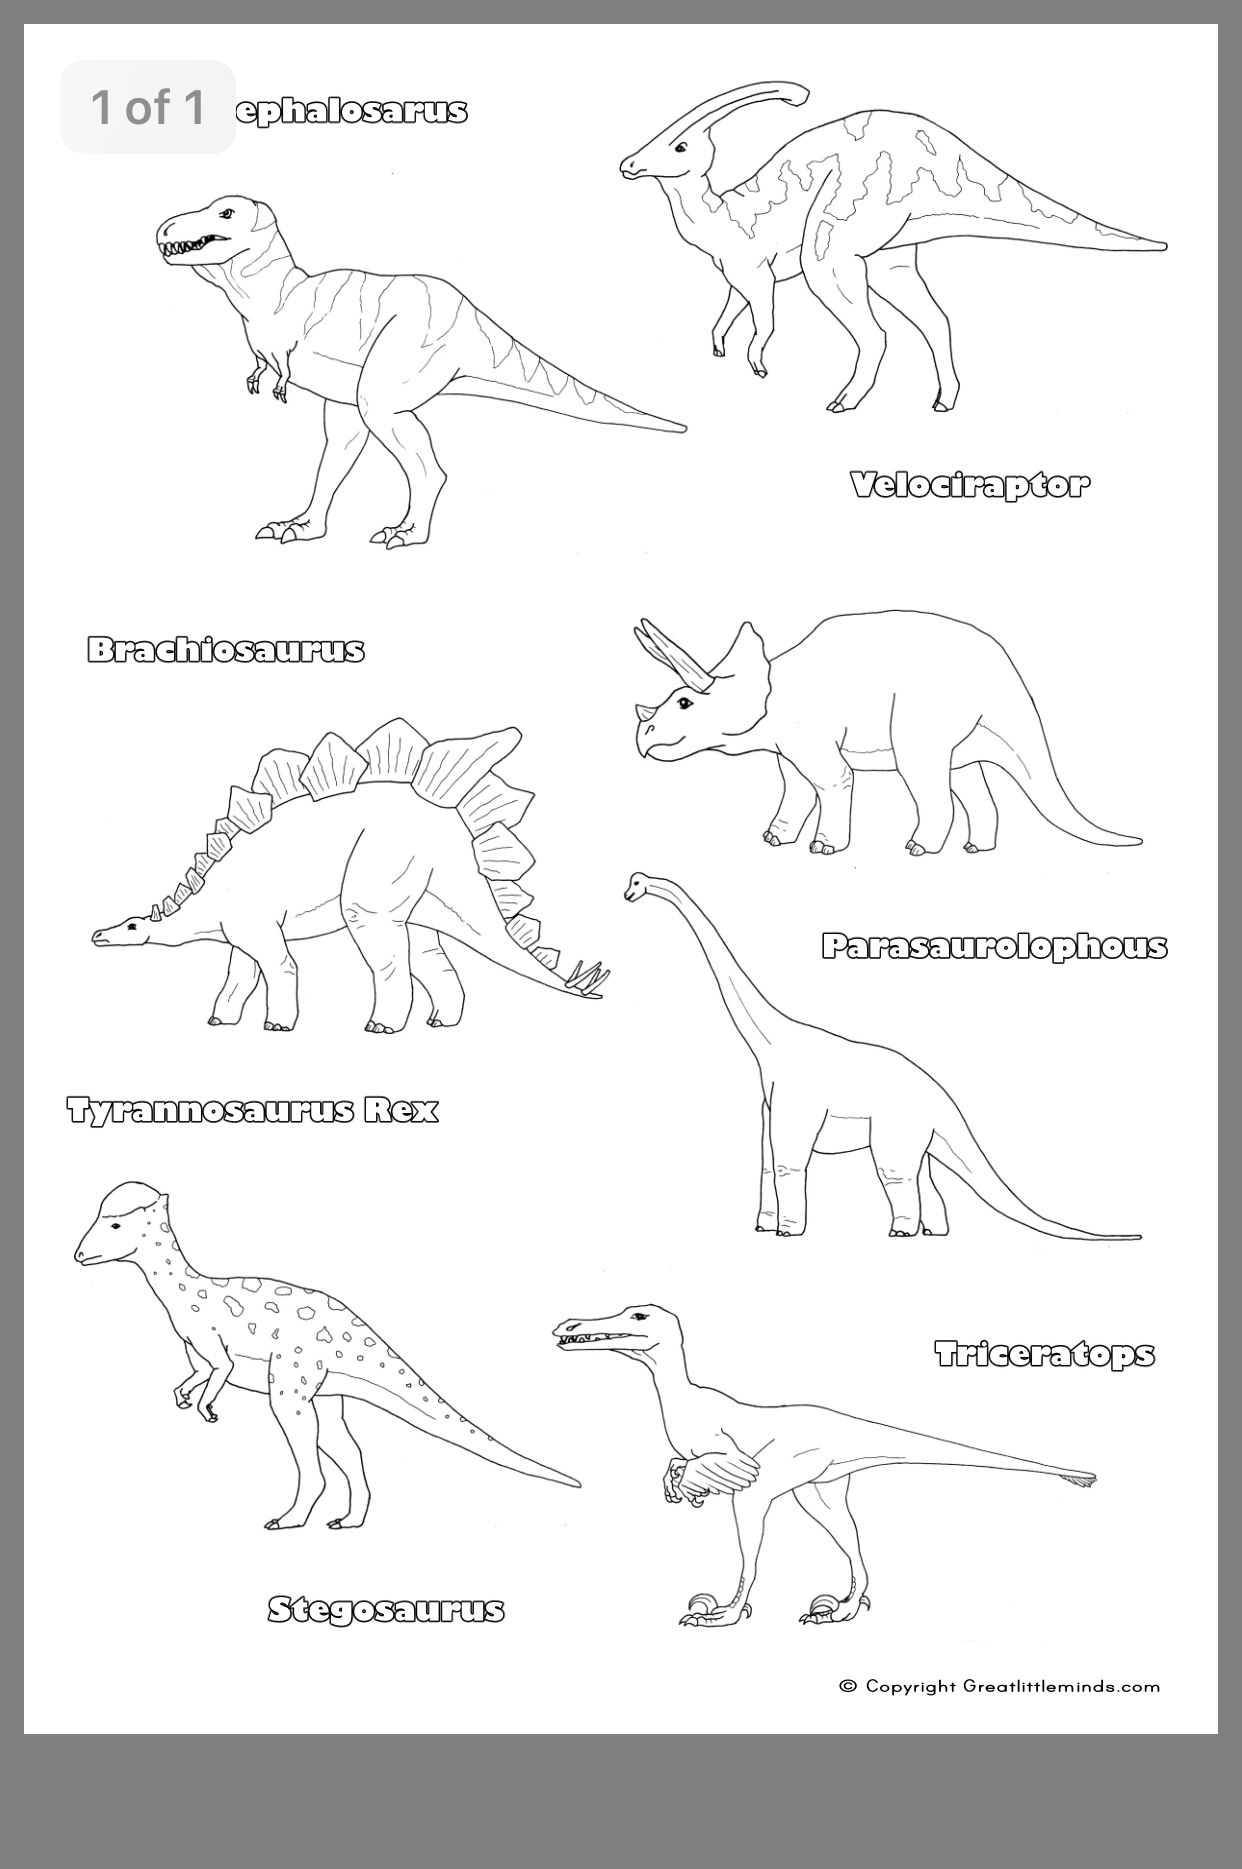 Pin By Rob Frey On Dinosaurs